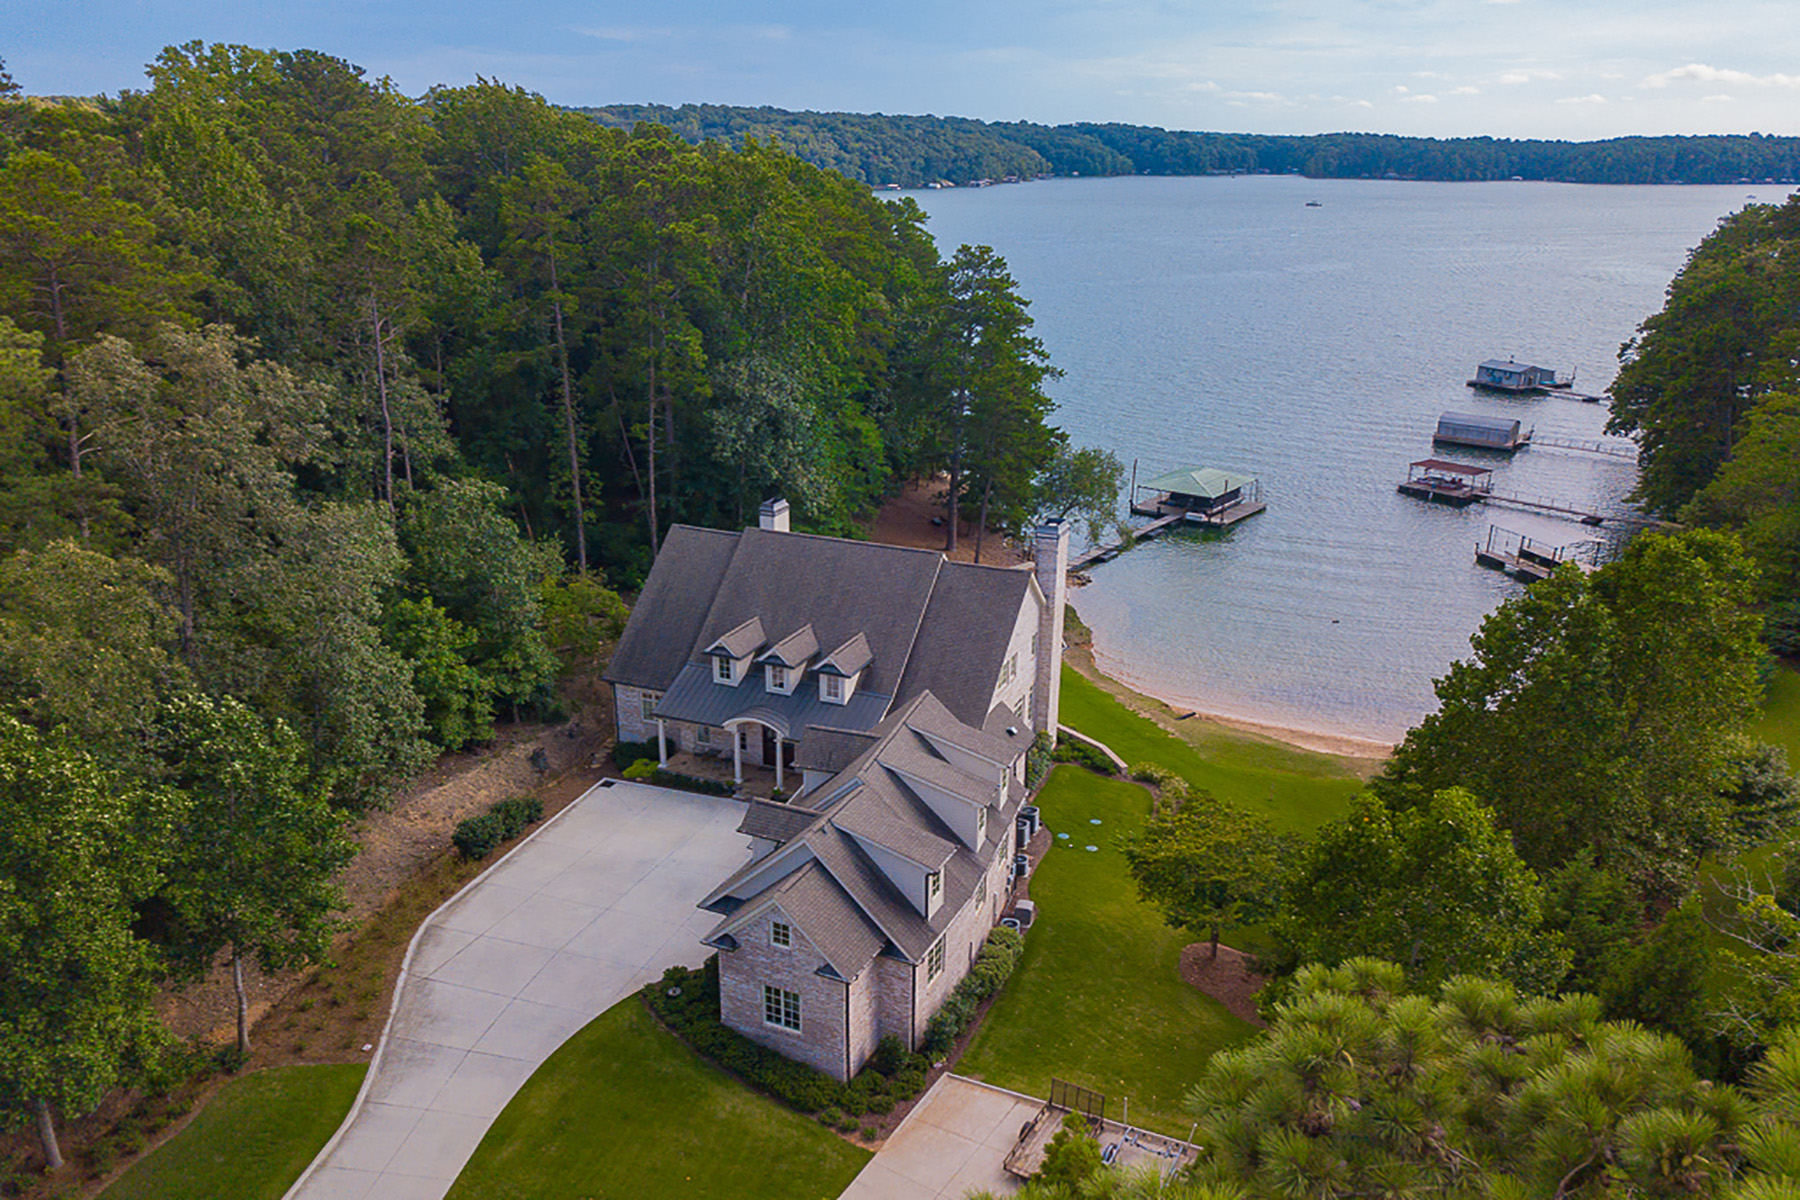 Single Family Homes for Active at Spectacular Lake Home On Lanier's South End 4763 Propes Drive Oakwood, Georgia 30566 United States